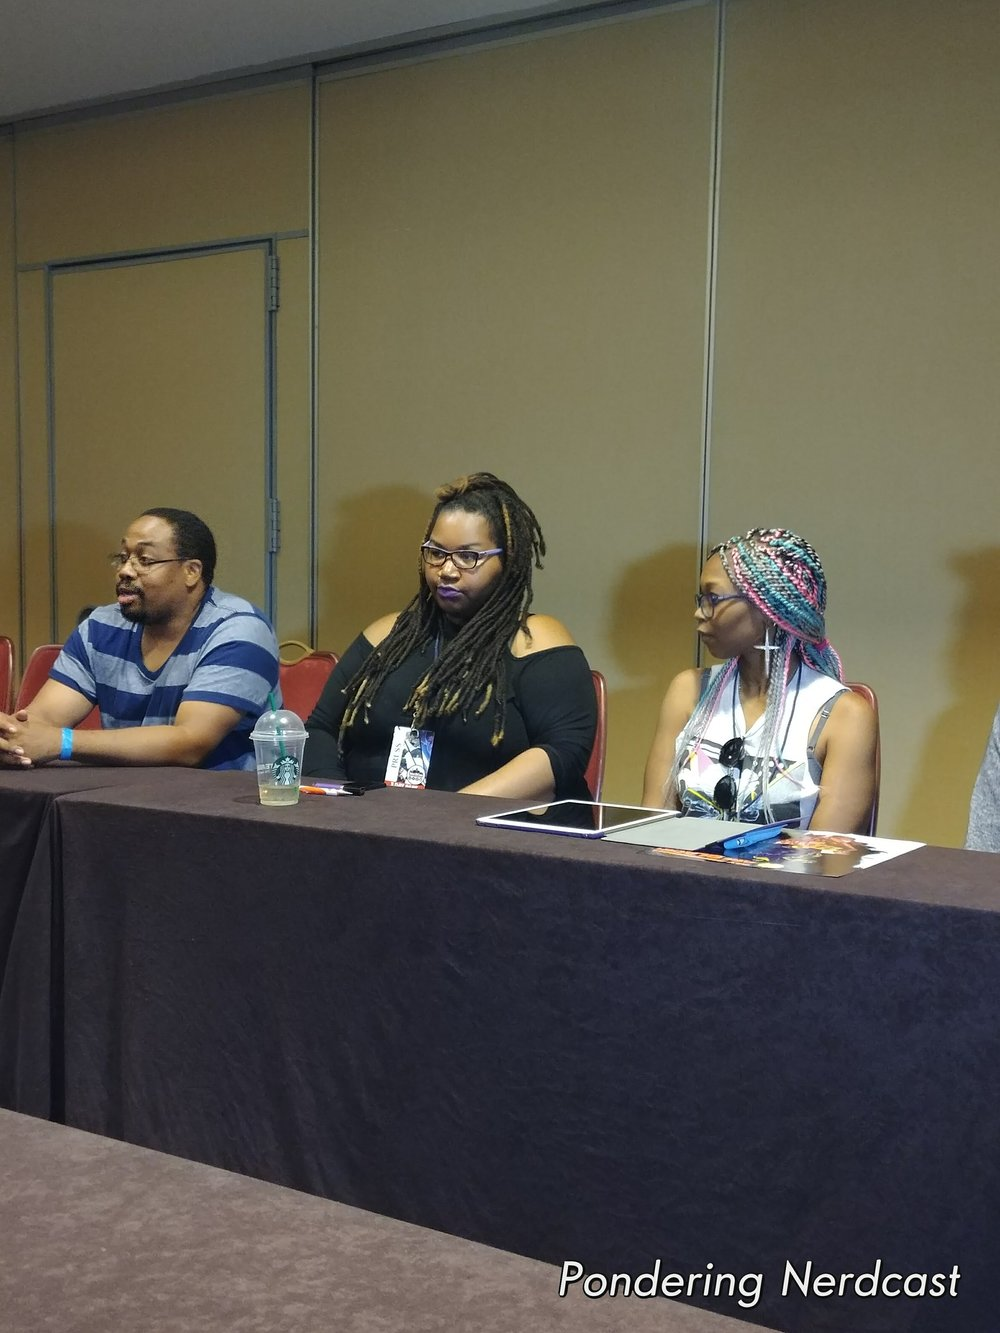 Lance (left) giving advice on a panel dedicated to new media along with Erika Hardison (center) of Fabulize Magazine, and Candice Jones (right) of Rebel A Studios